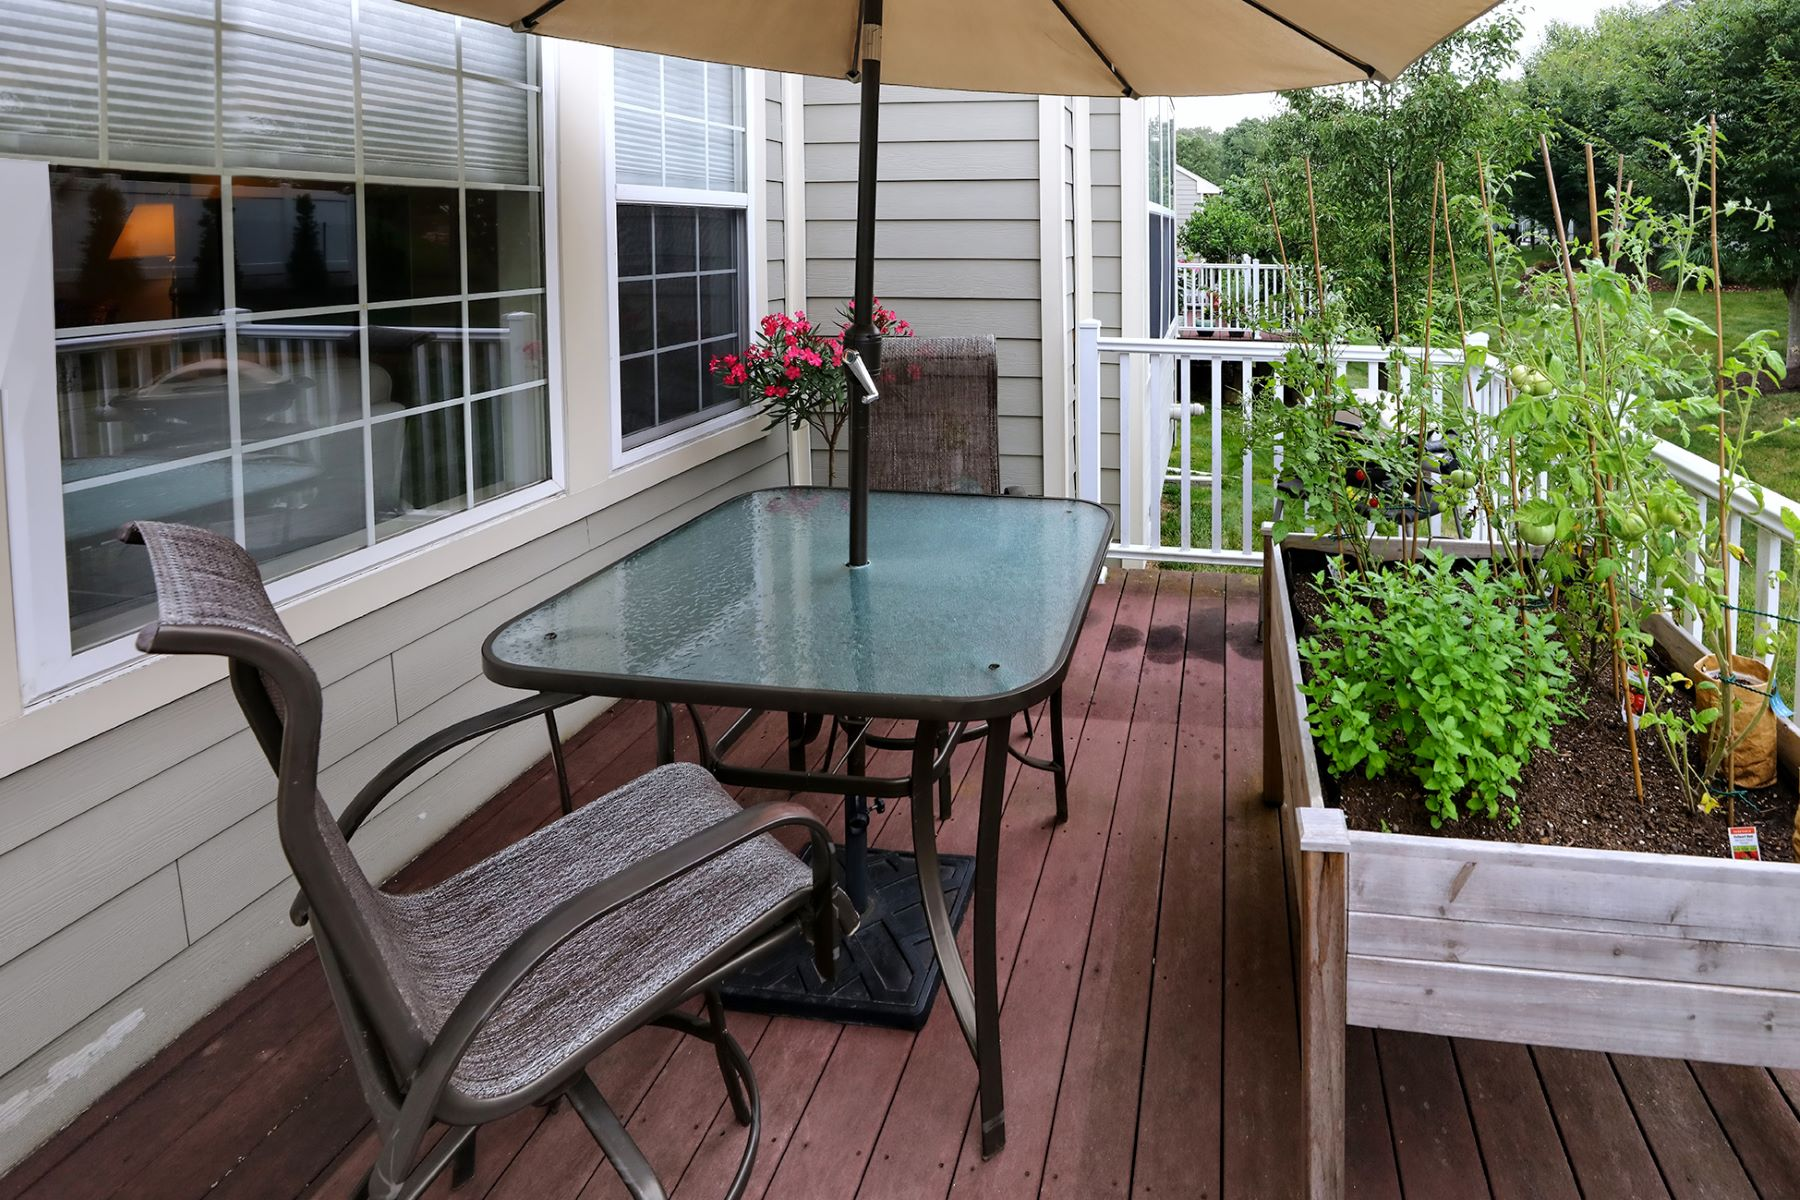 Additional photo for property listing at Immaculate End Unit Livingston Model - Lambert's Hill 616 Heath Court, Lambertville, New Jersey 08530 United States